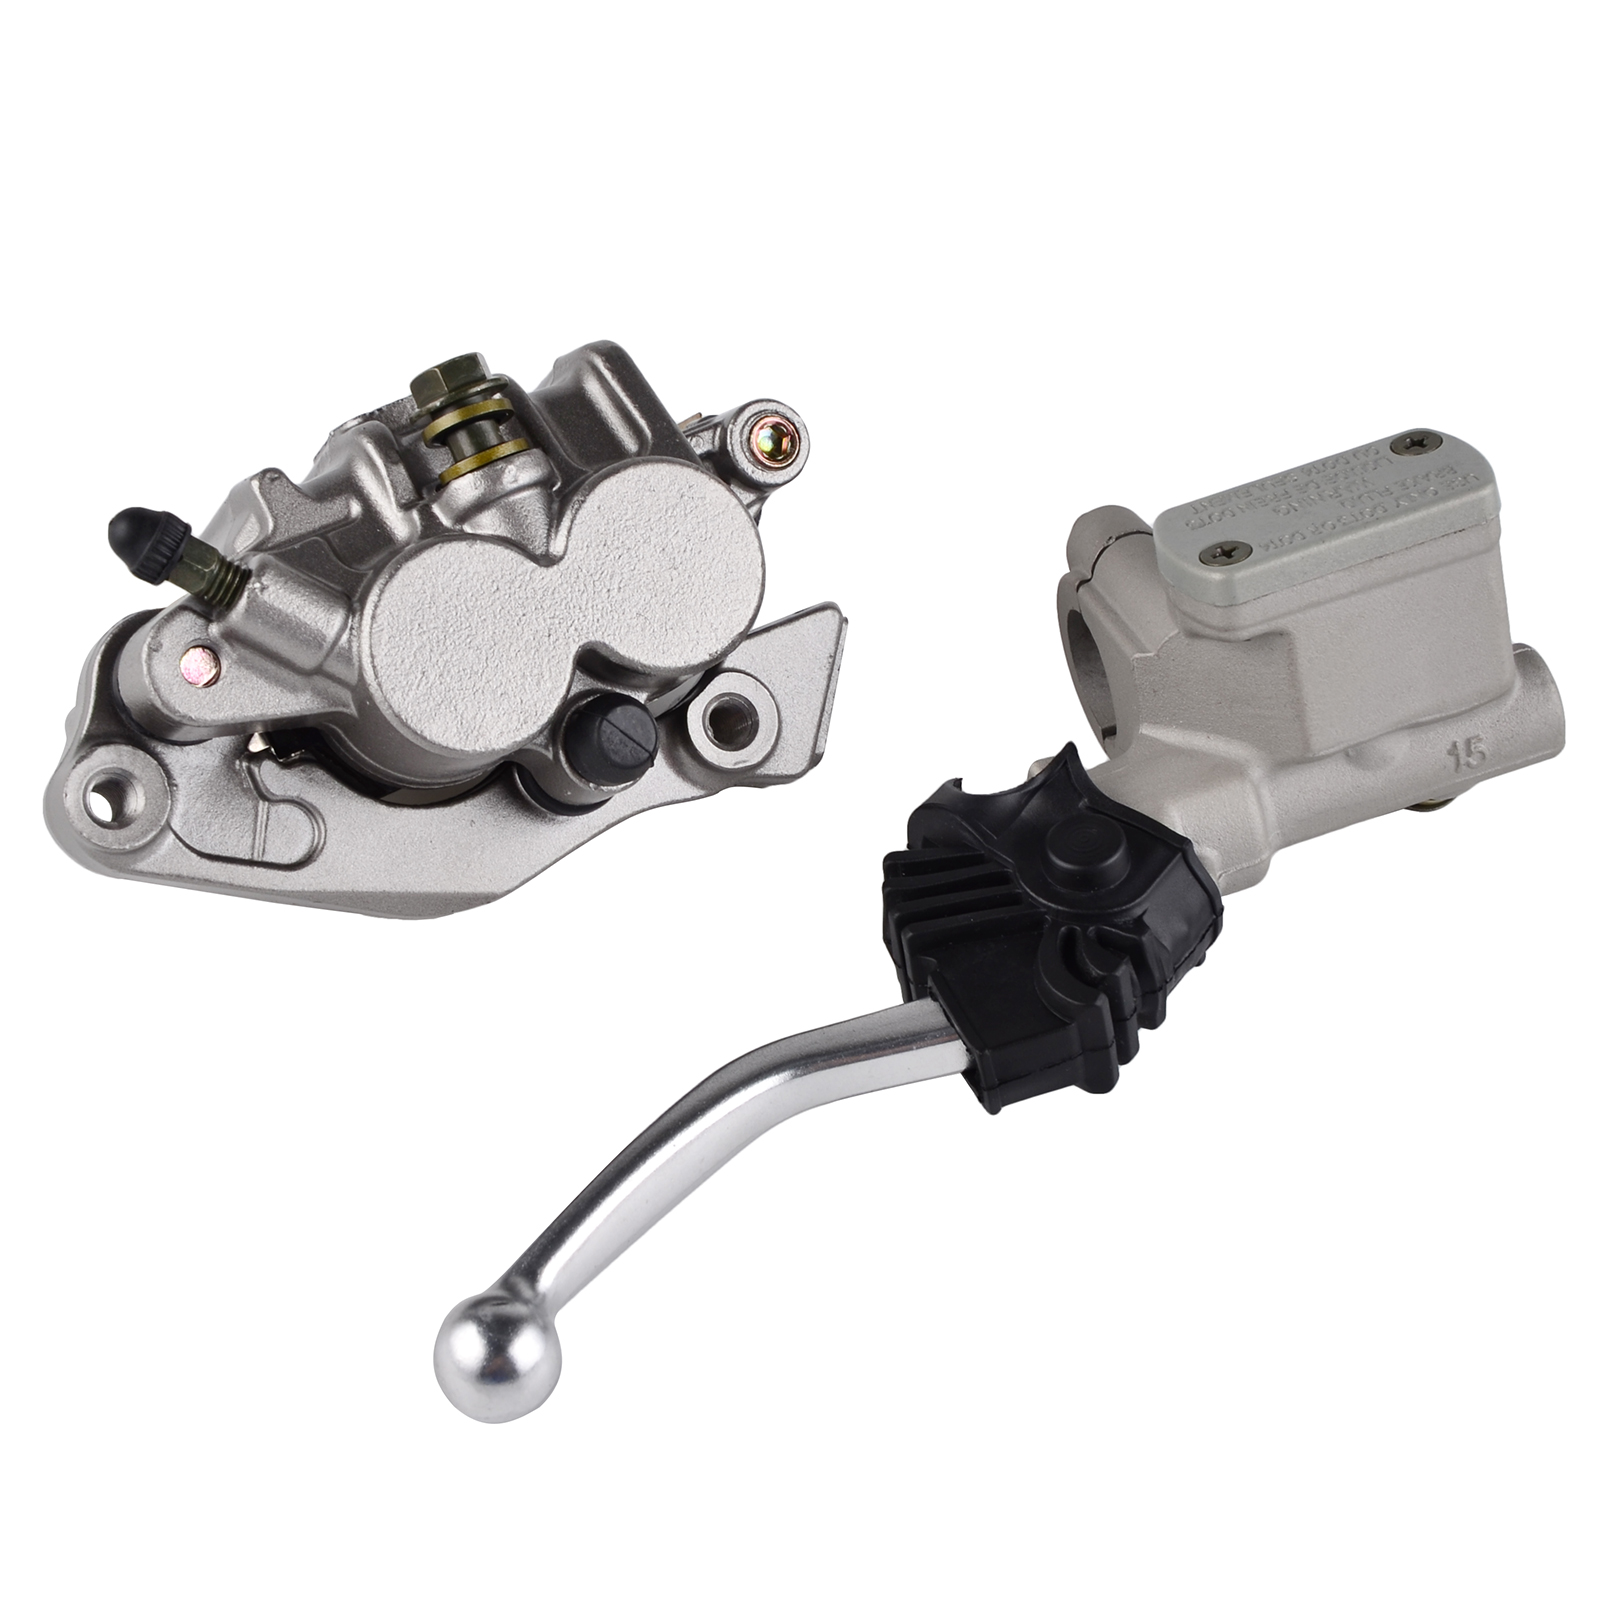 Motorcycle Front Master Cylinder Lever Brake Caliper Pads For Honda CR 125R CRF 125F 250R 250X